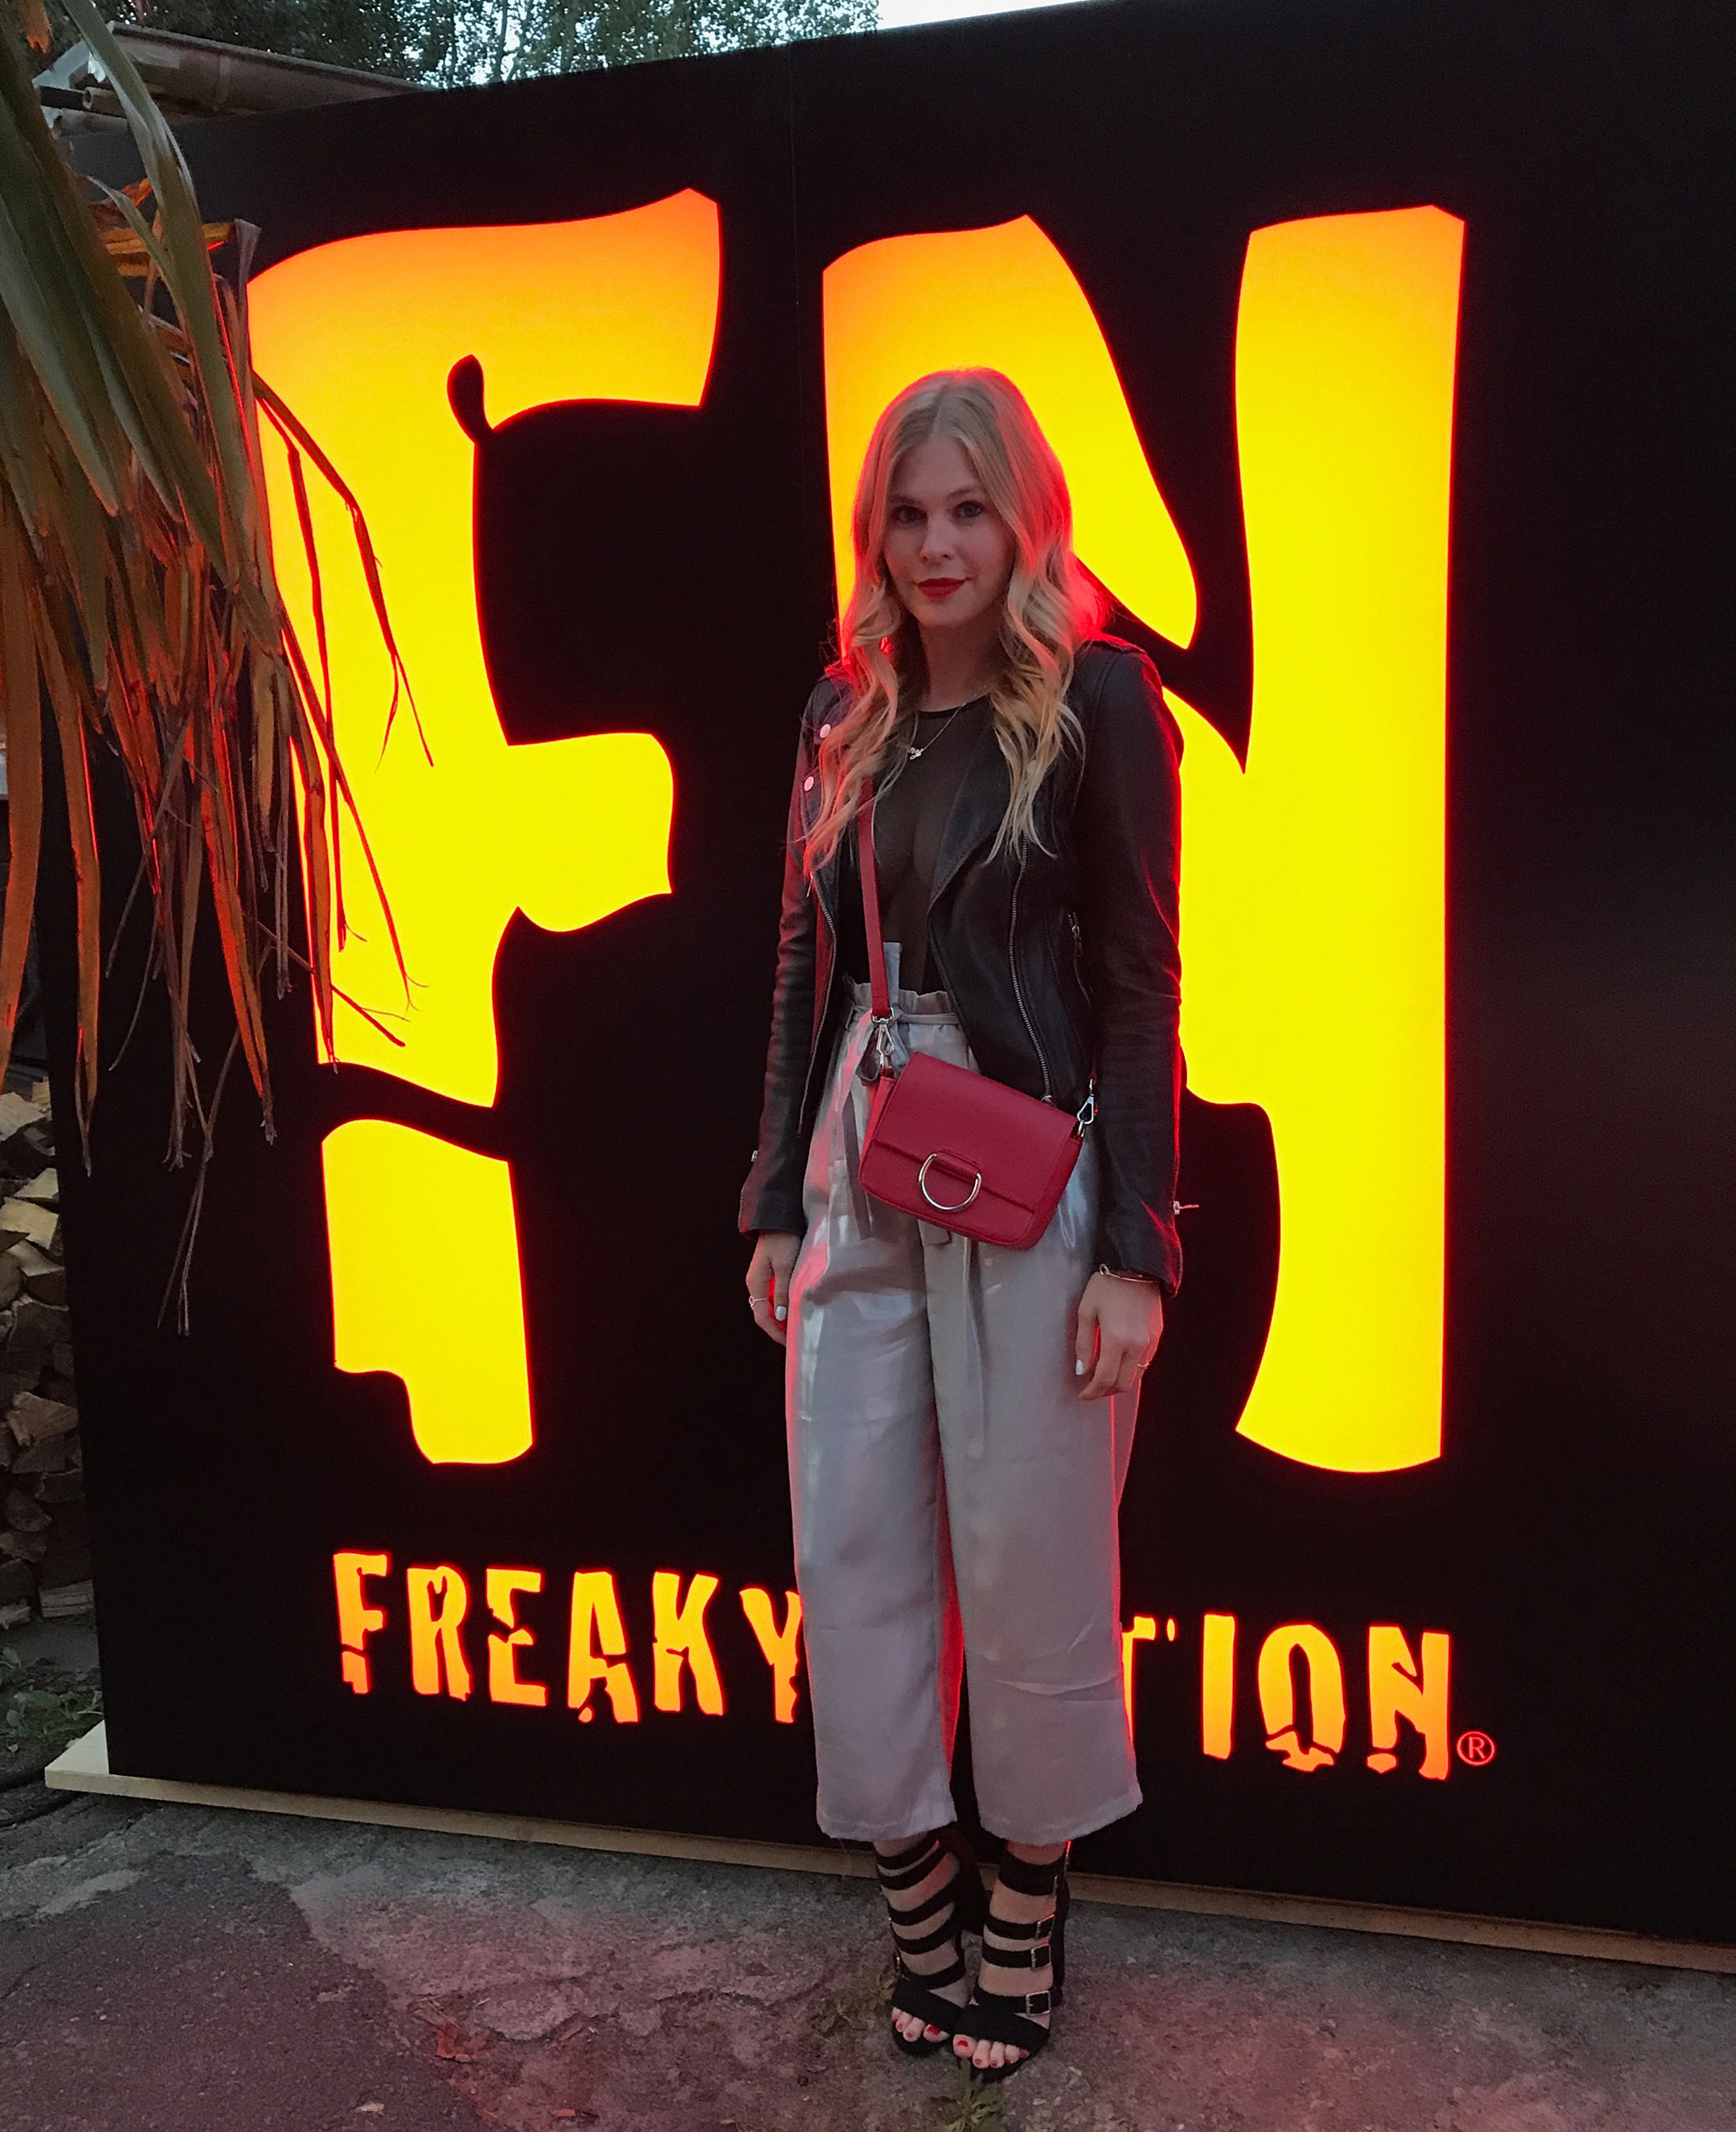 Freaky Nation Lederjacke Event Sage Berlin Fashion Week Sunnyinga